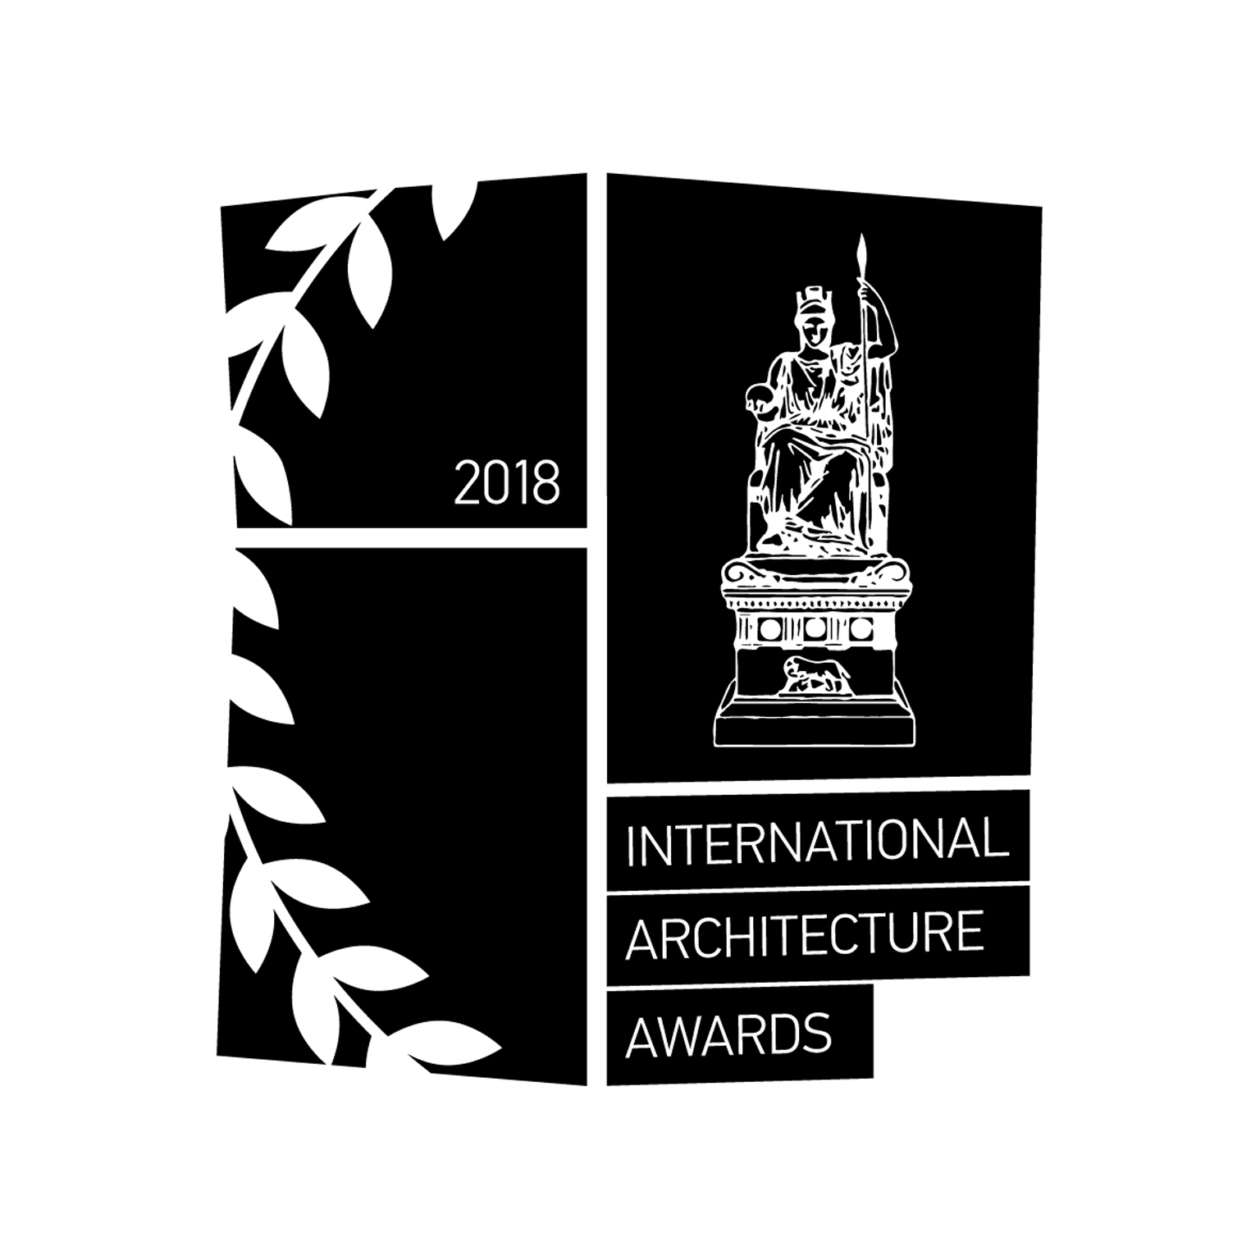 The International Architecture Awards 18 Christ Christ Associated Architects 001